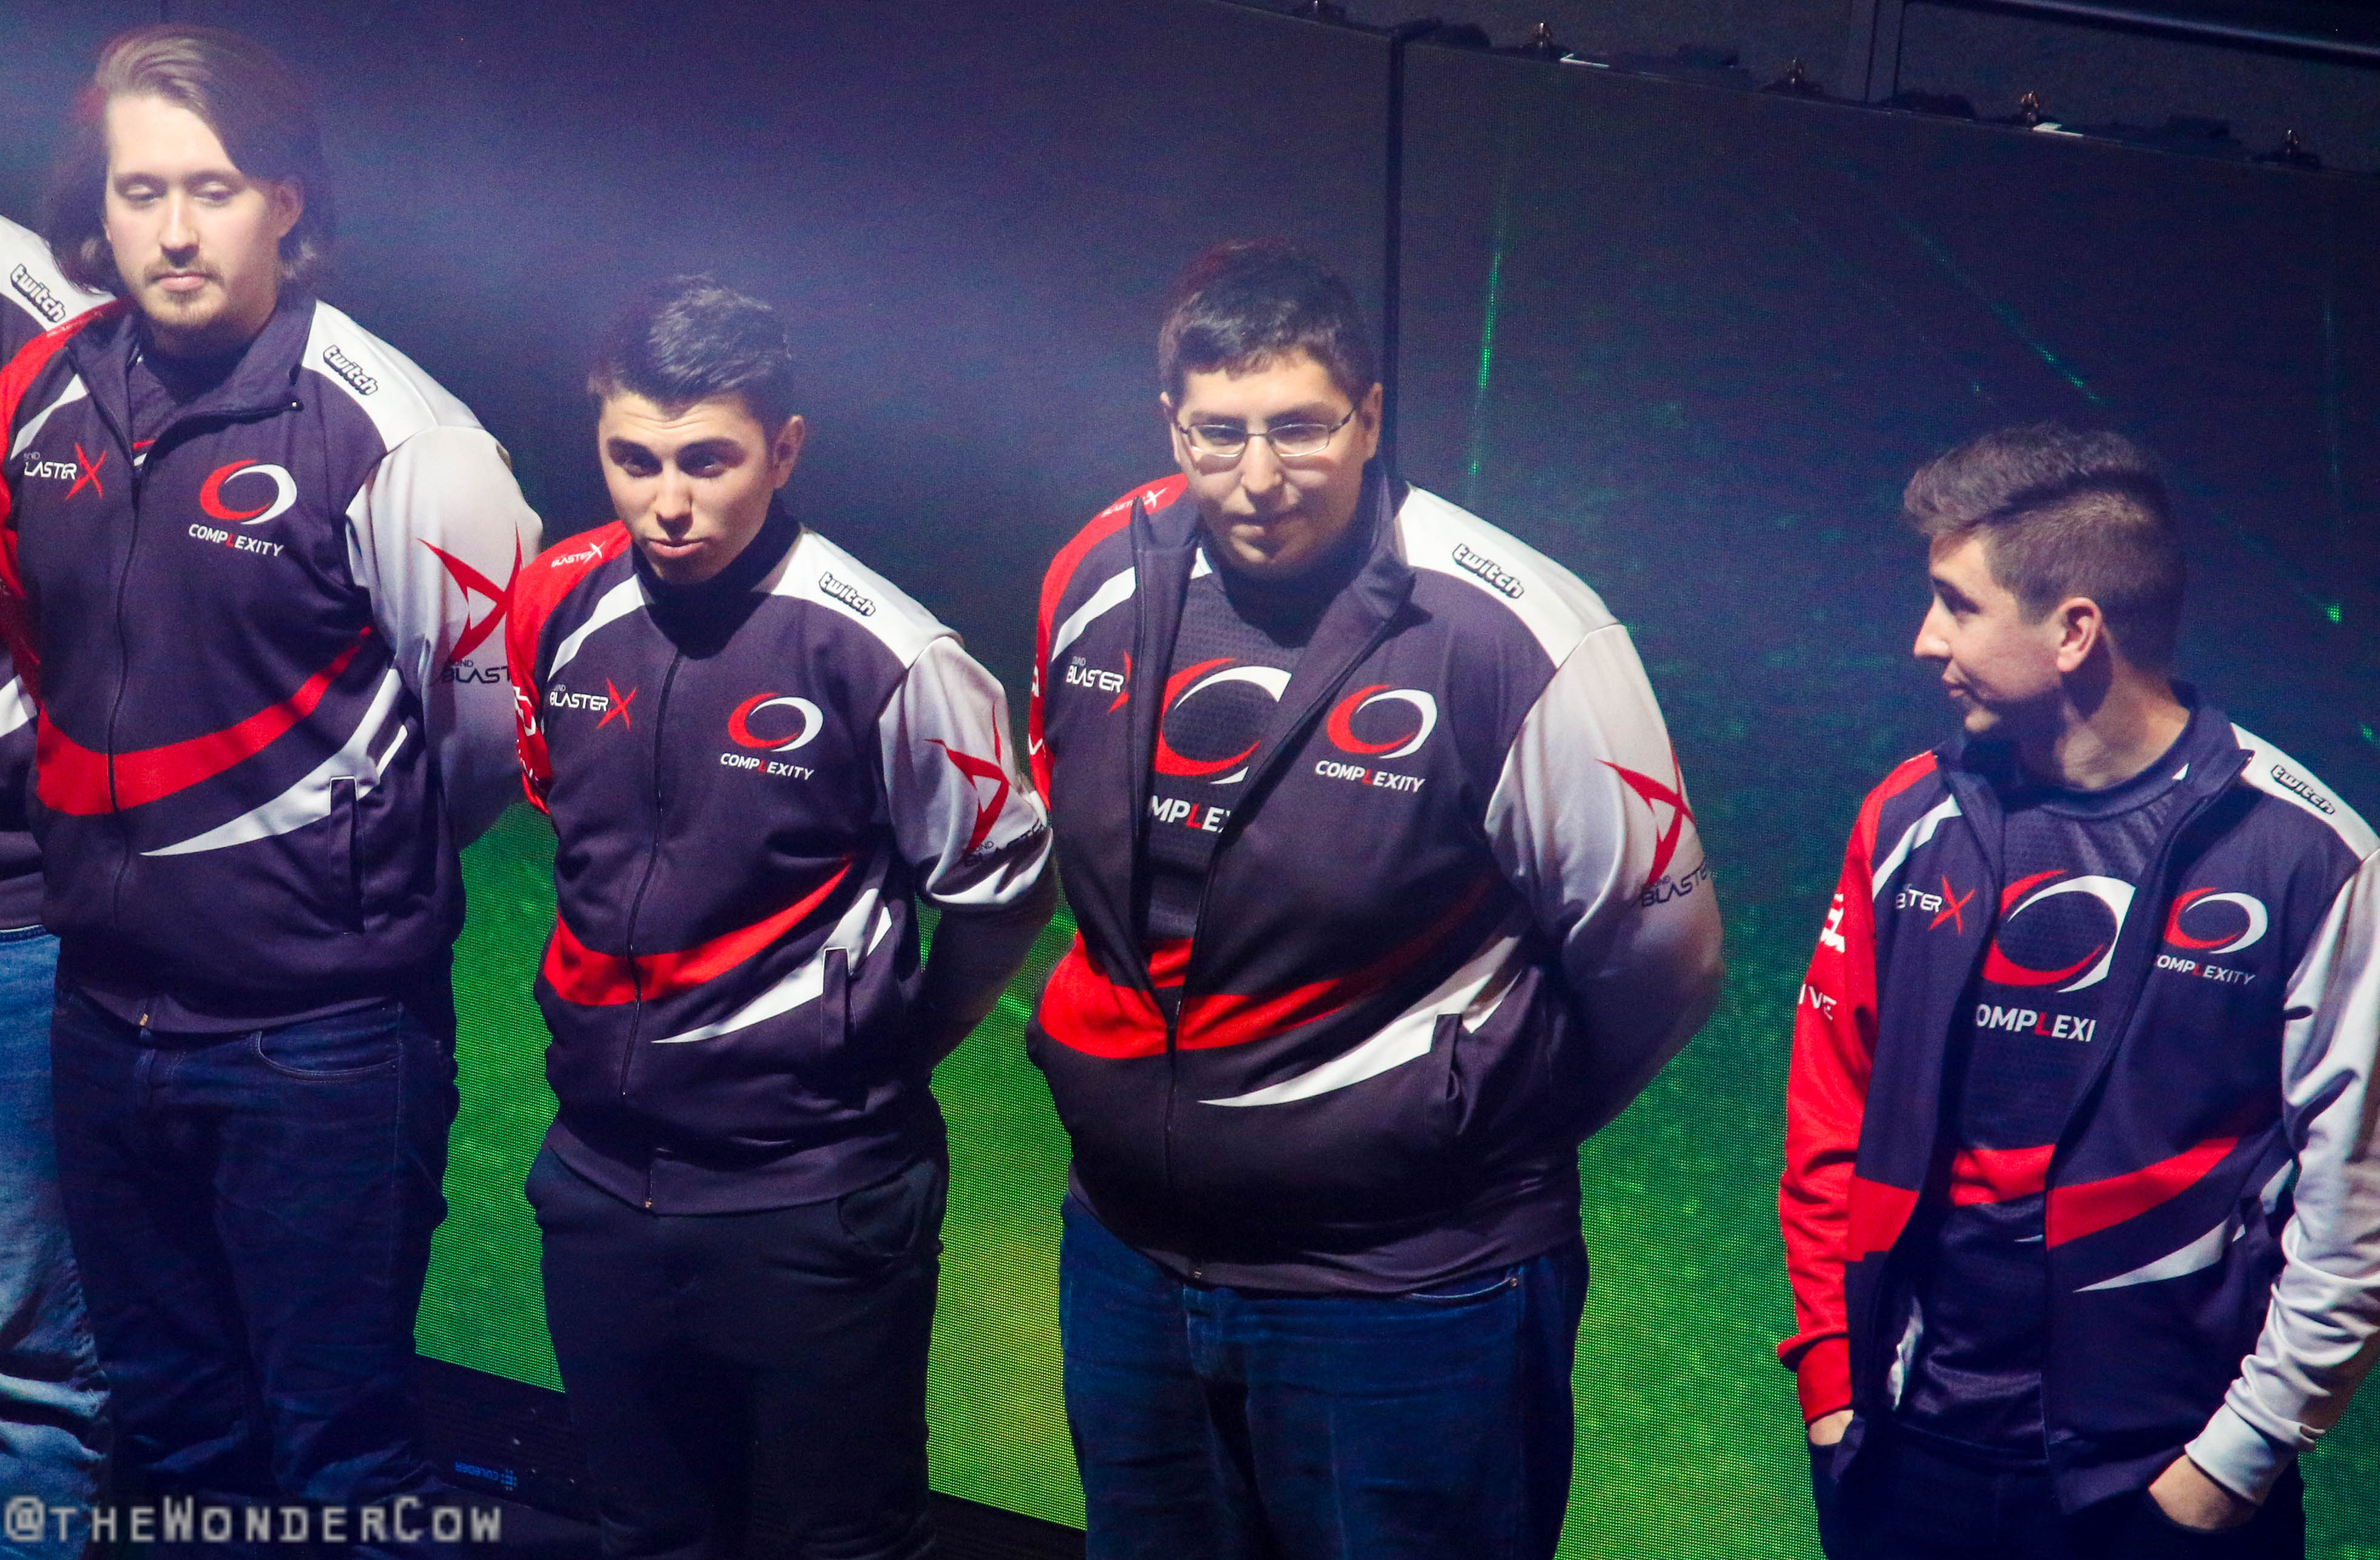 Compexity at the Boston Major